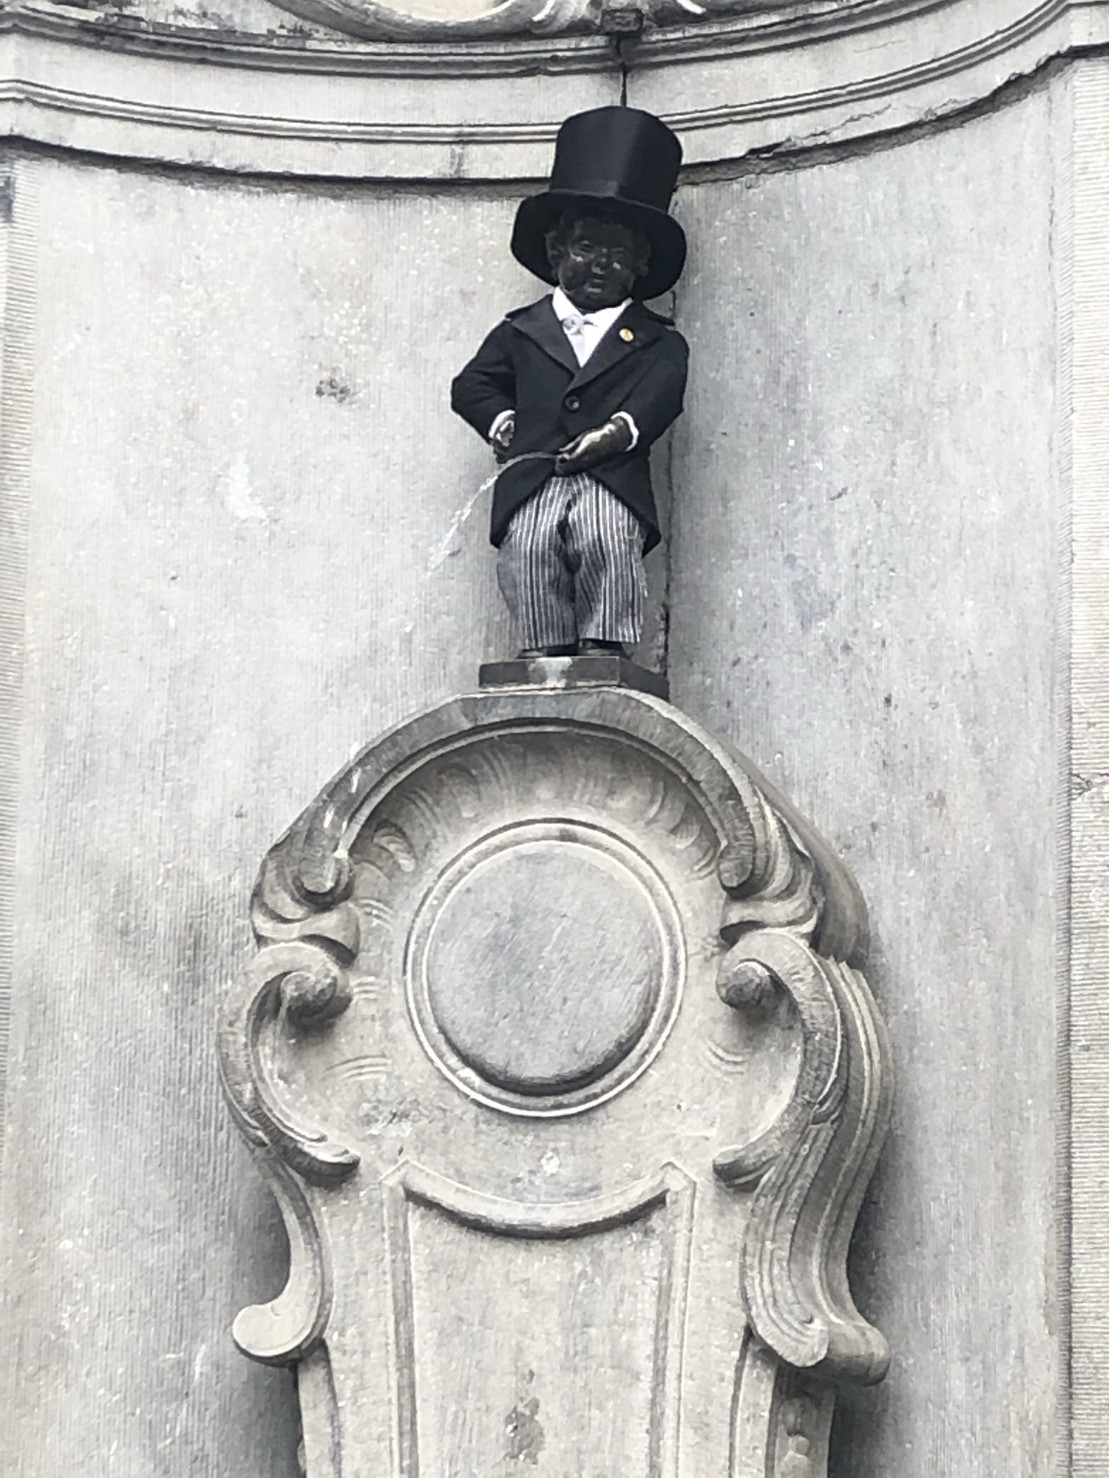 Manneken Pis dressed like a rich businessman or something.